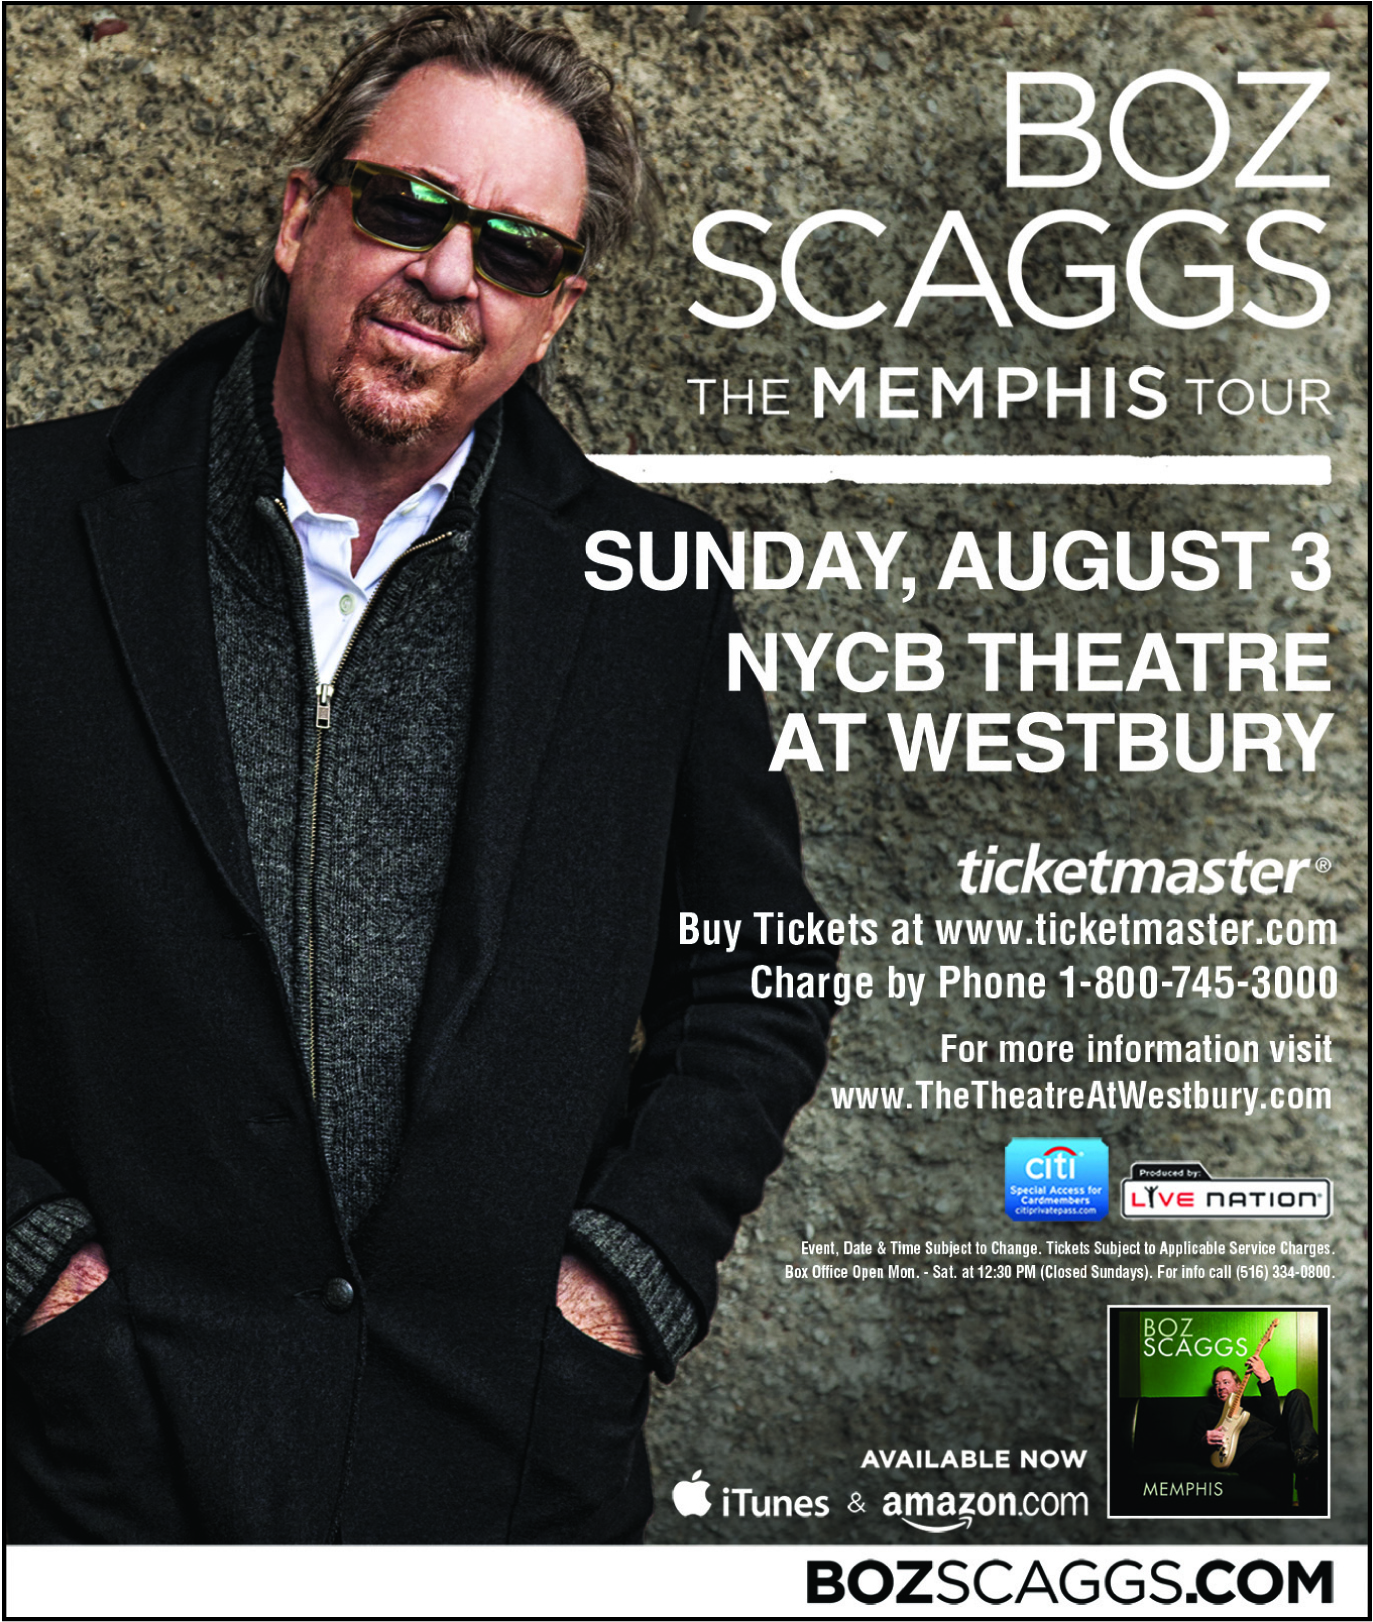 Special Block of Tickets for Boz Scaggs at NYCB Theatre at